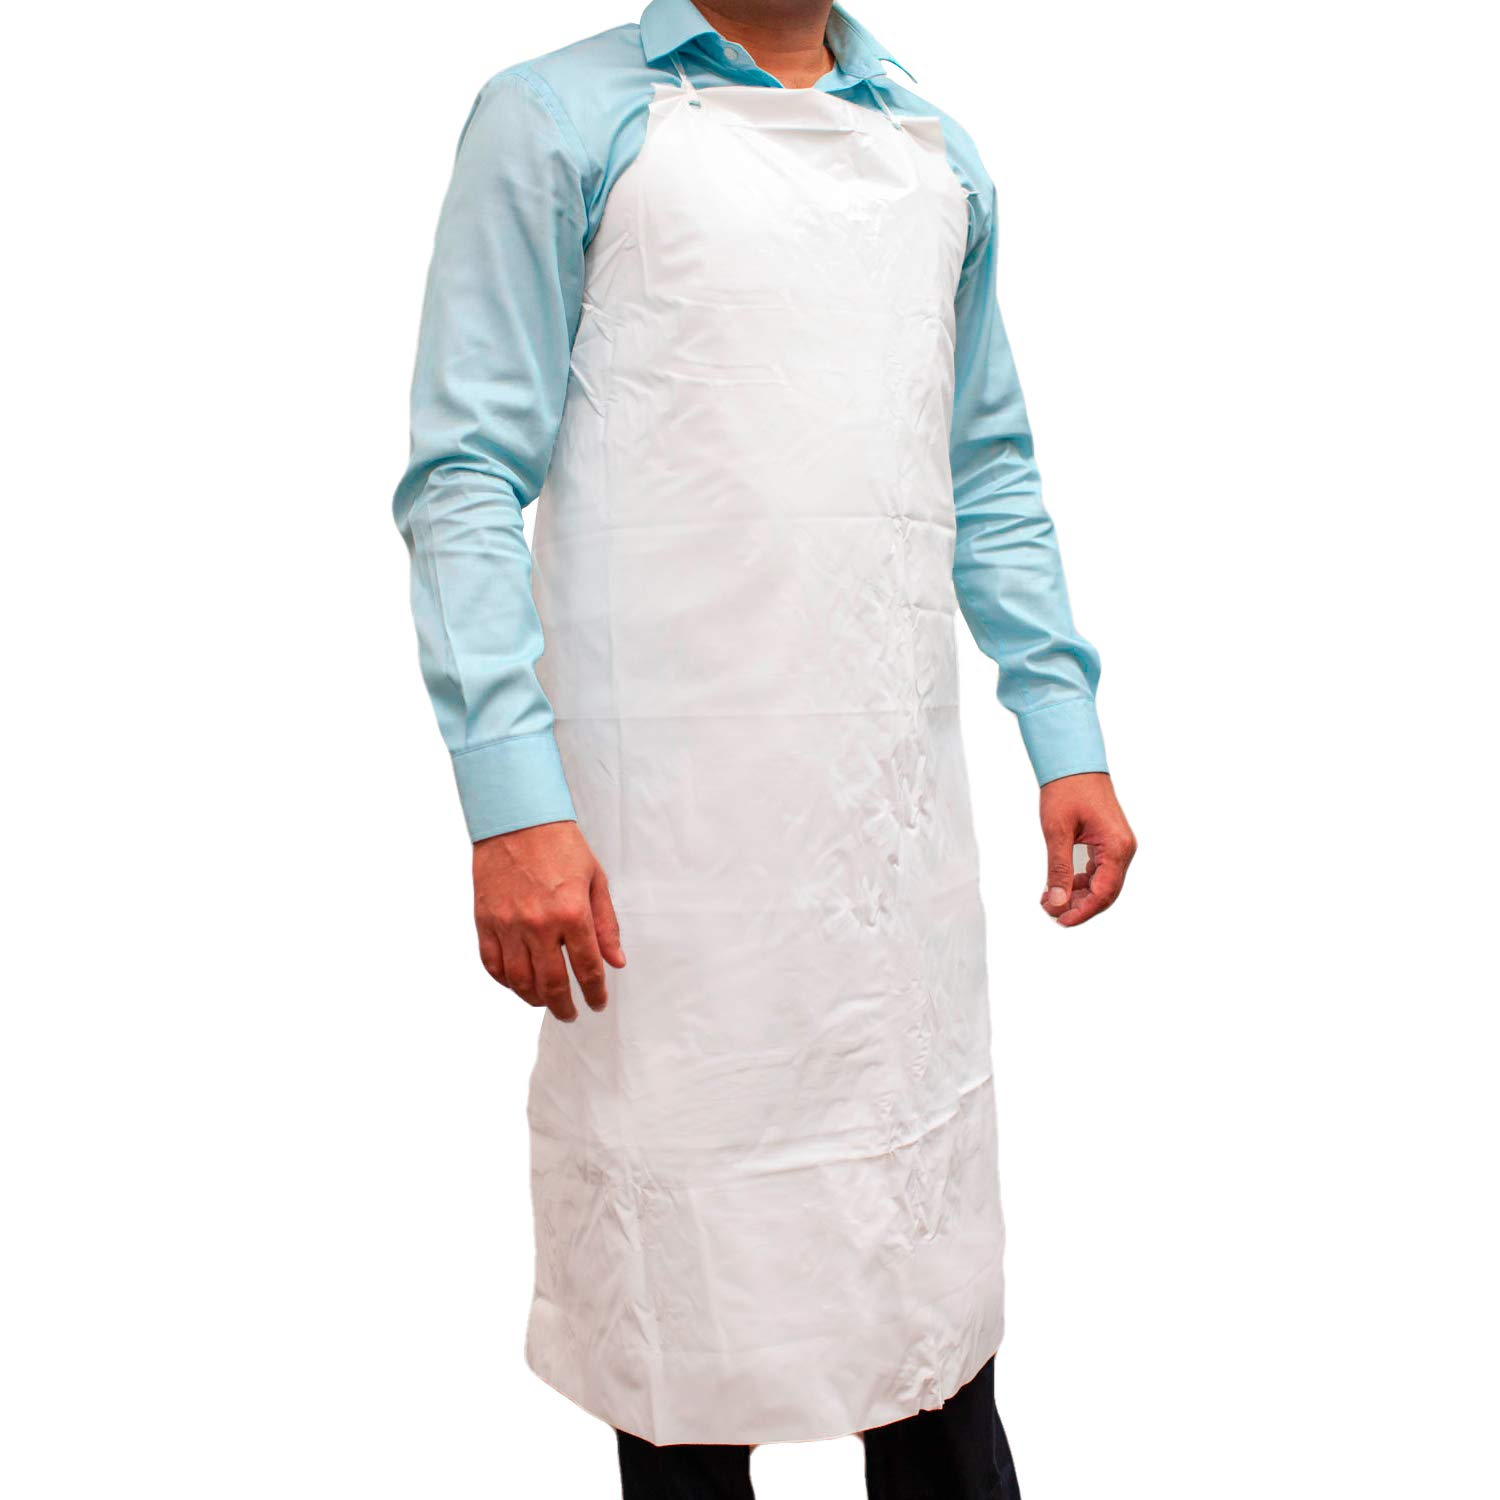 SAFE HANDLER PVC Apron   Smooth finish to Prevent Bacterial Growth, Comfortable, Easily Adjustable, Waterproof Material, WHITE (Case of 50) by Safe Handler (Image #2)